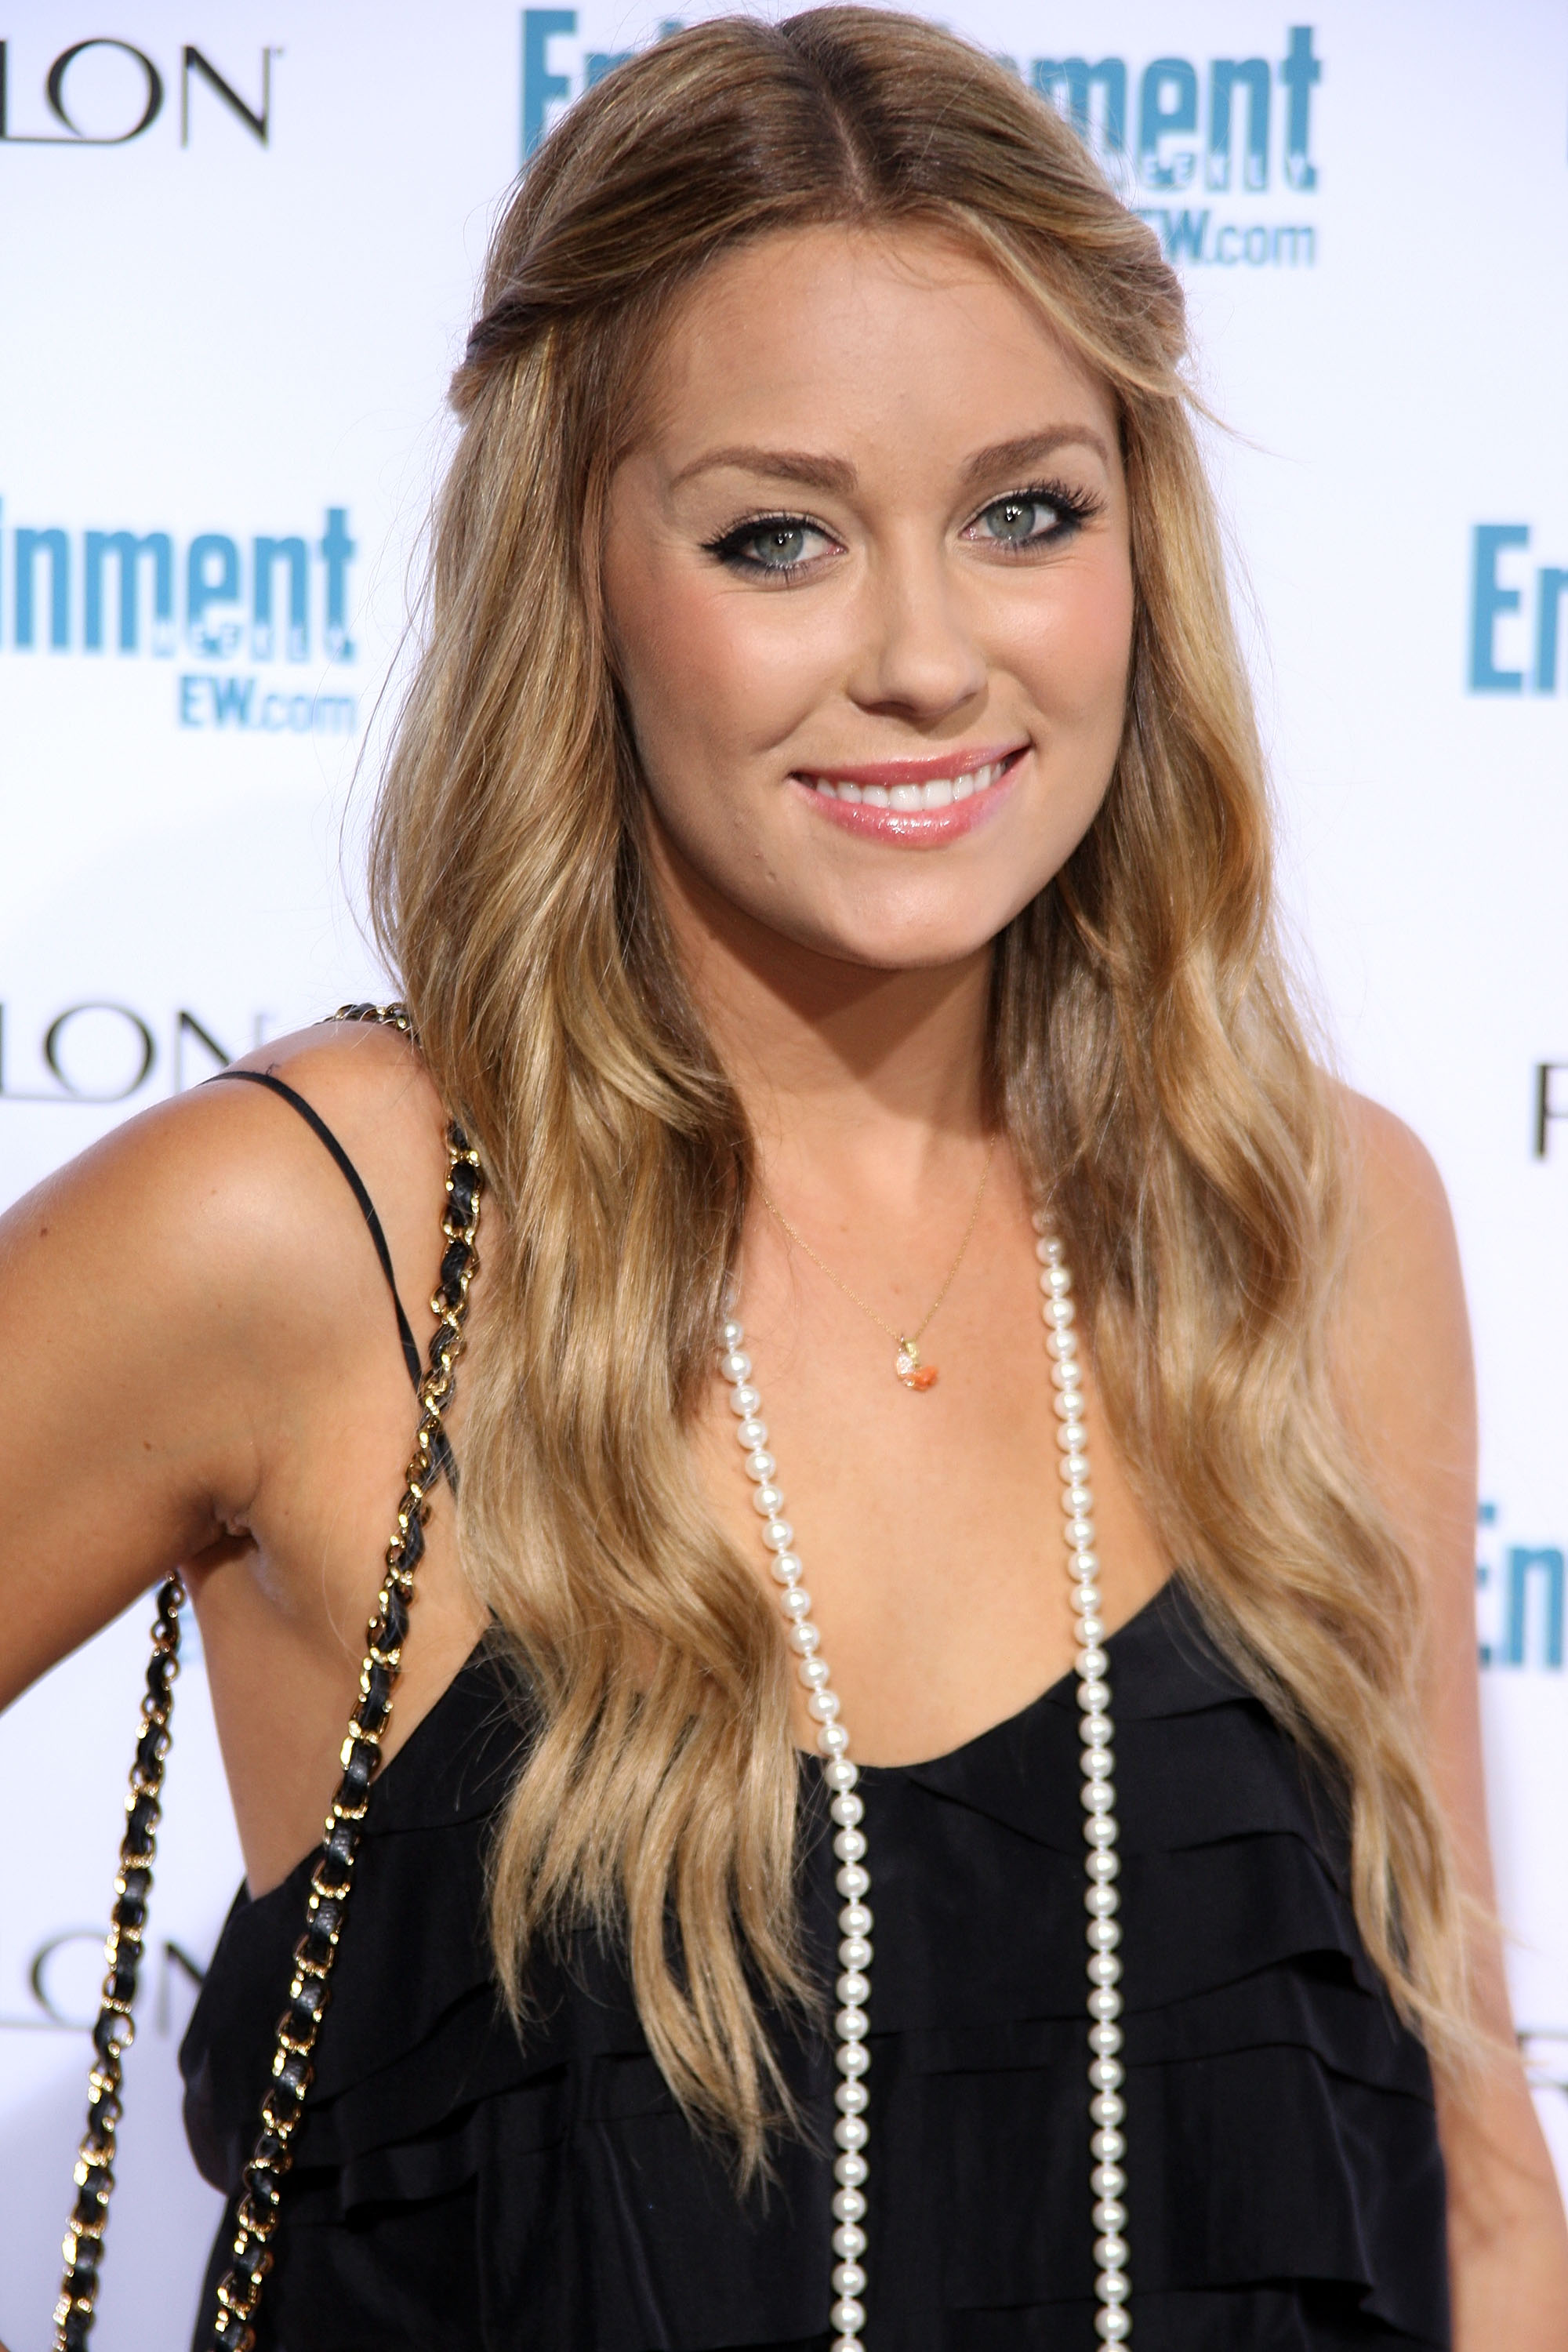 sexycelebs42.blogspot.com: Lauren Conrad betfred 'racing's biggest supporter' 'national hunt - free bets ass hq